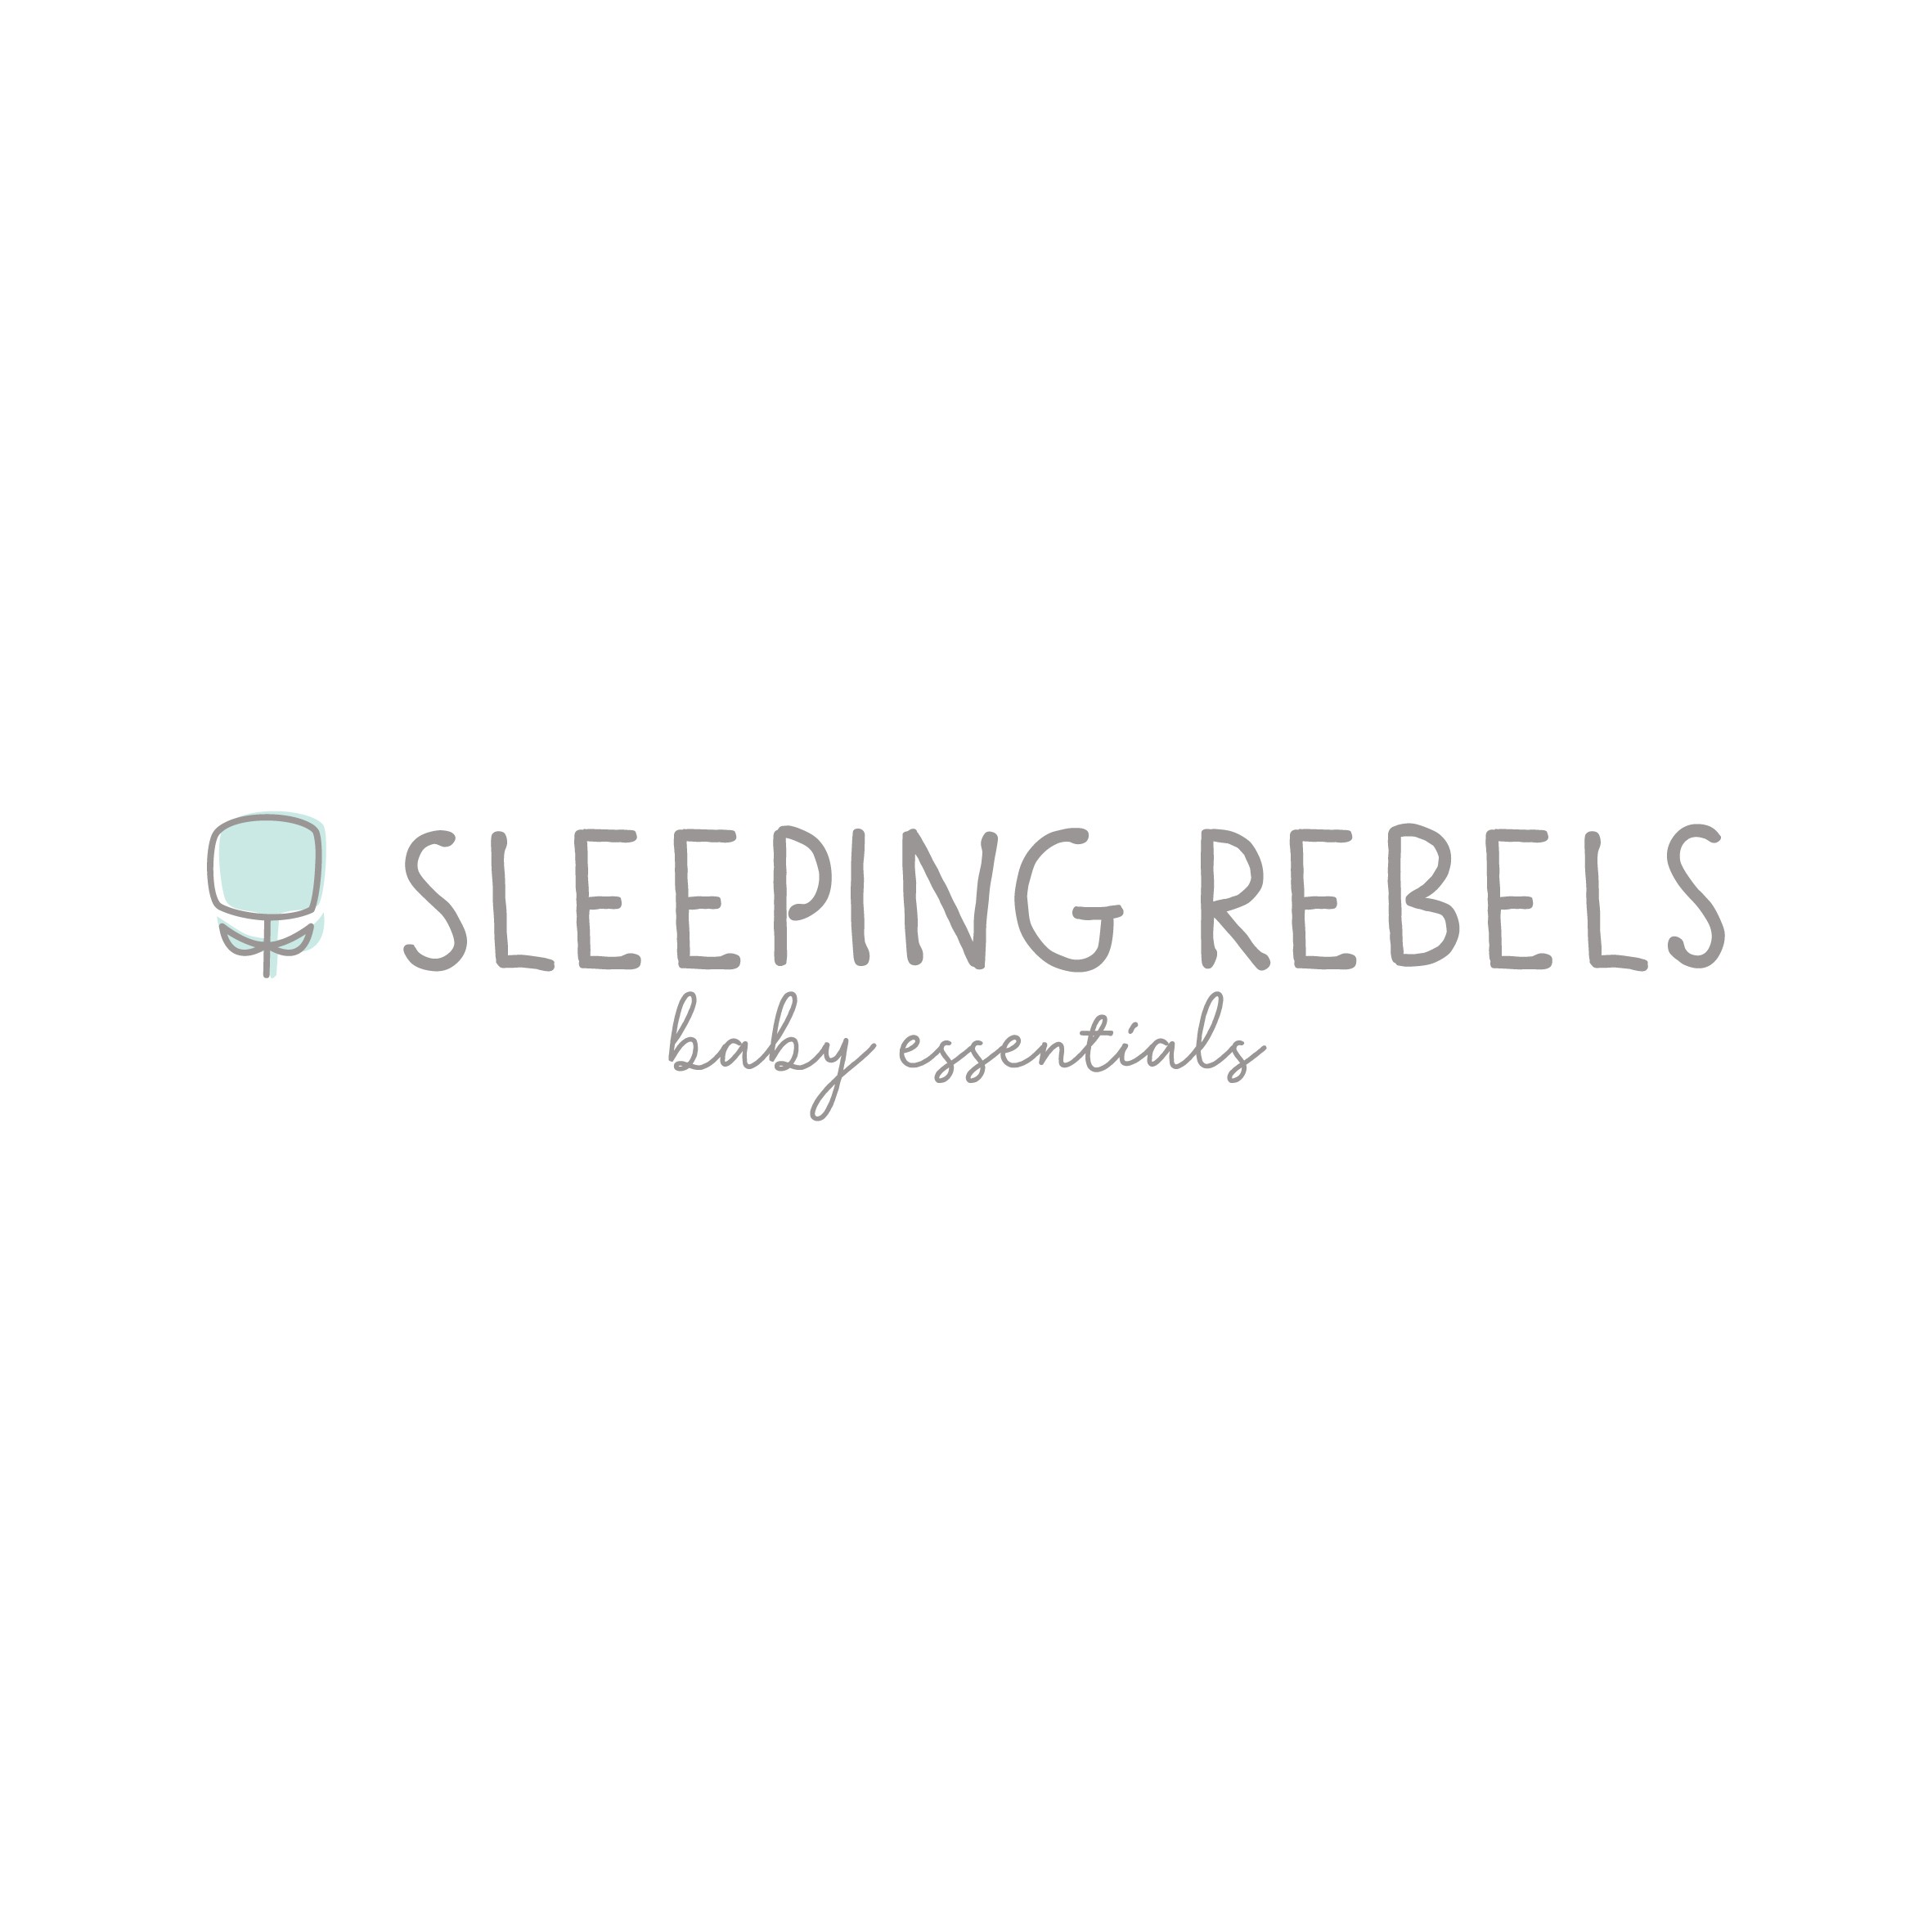 Create an awesome new logo for our baby fashion/accessories brand